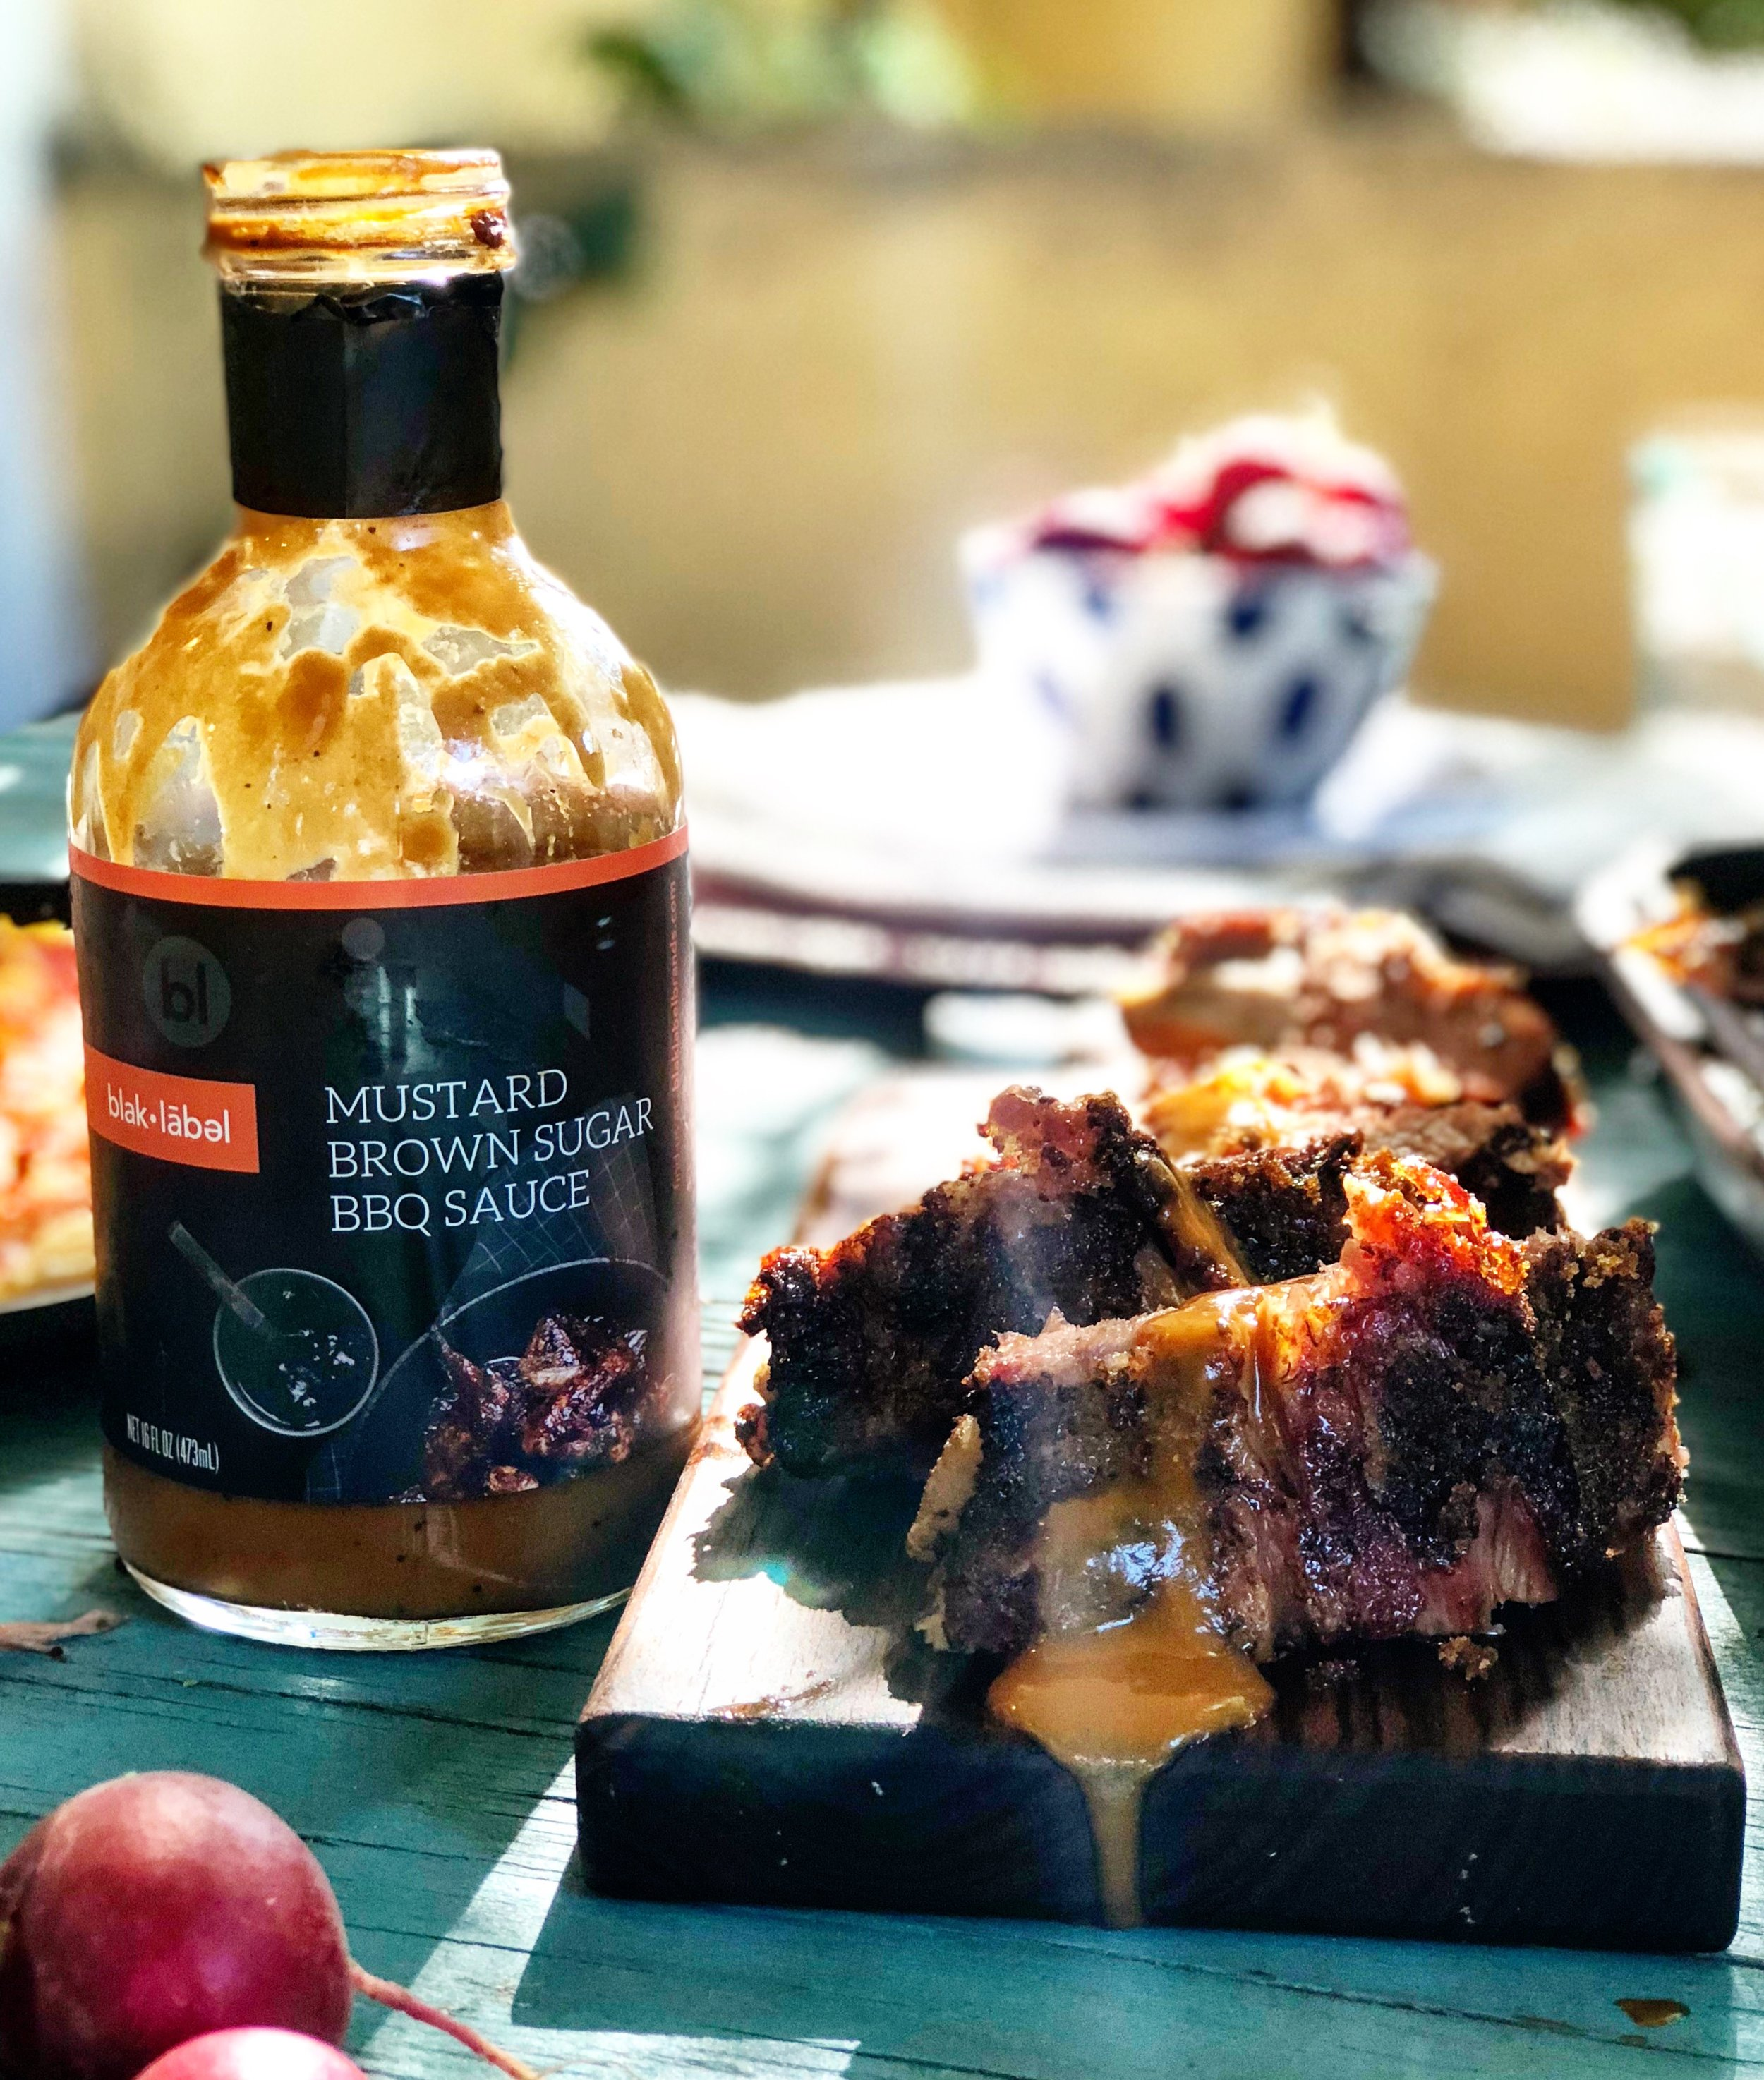 What's that barbecue sauce? Stay tuned for the official launch of our line of sauces, vinegars, oils, and rubs,   blak•label  .